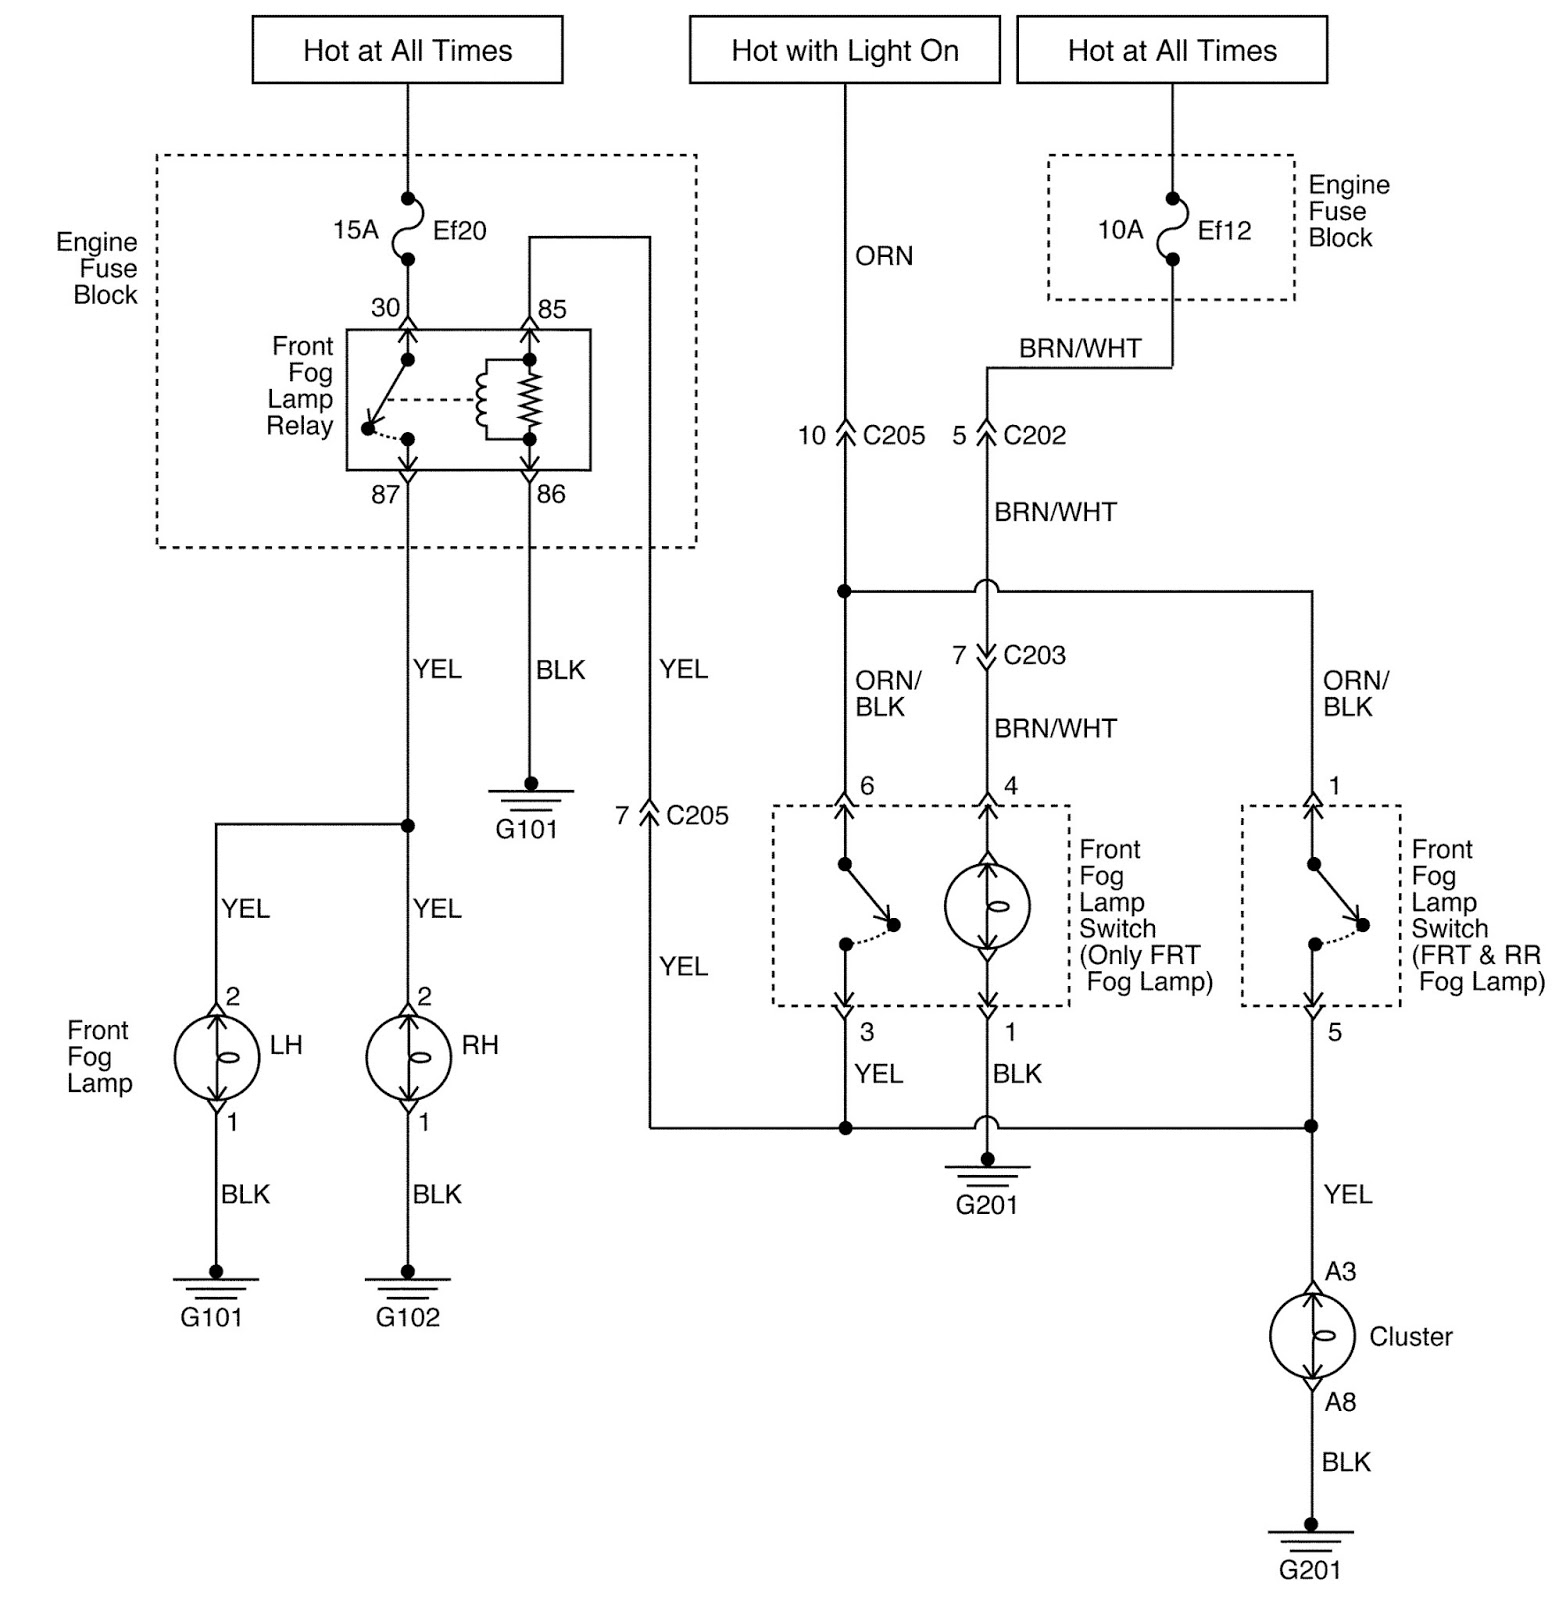 Daewoo Matiz Wiring Diagram: DAEWOO MATIZ CAR - LIGHTING SYSTEMS -  SCHEMATIC AND ROUTING ,